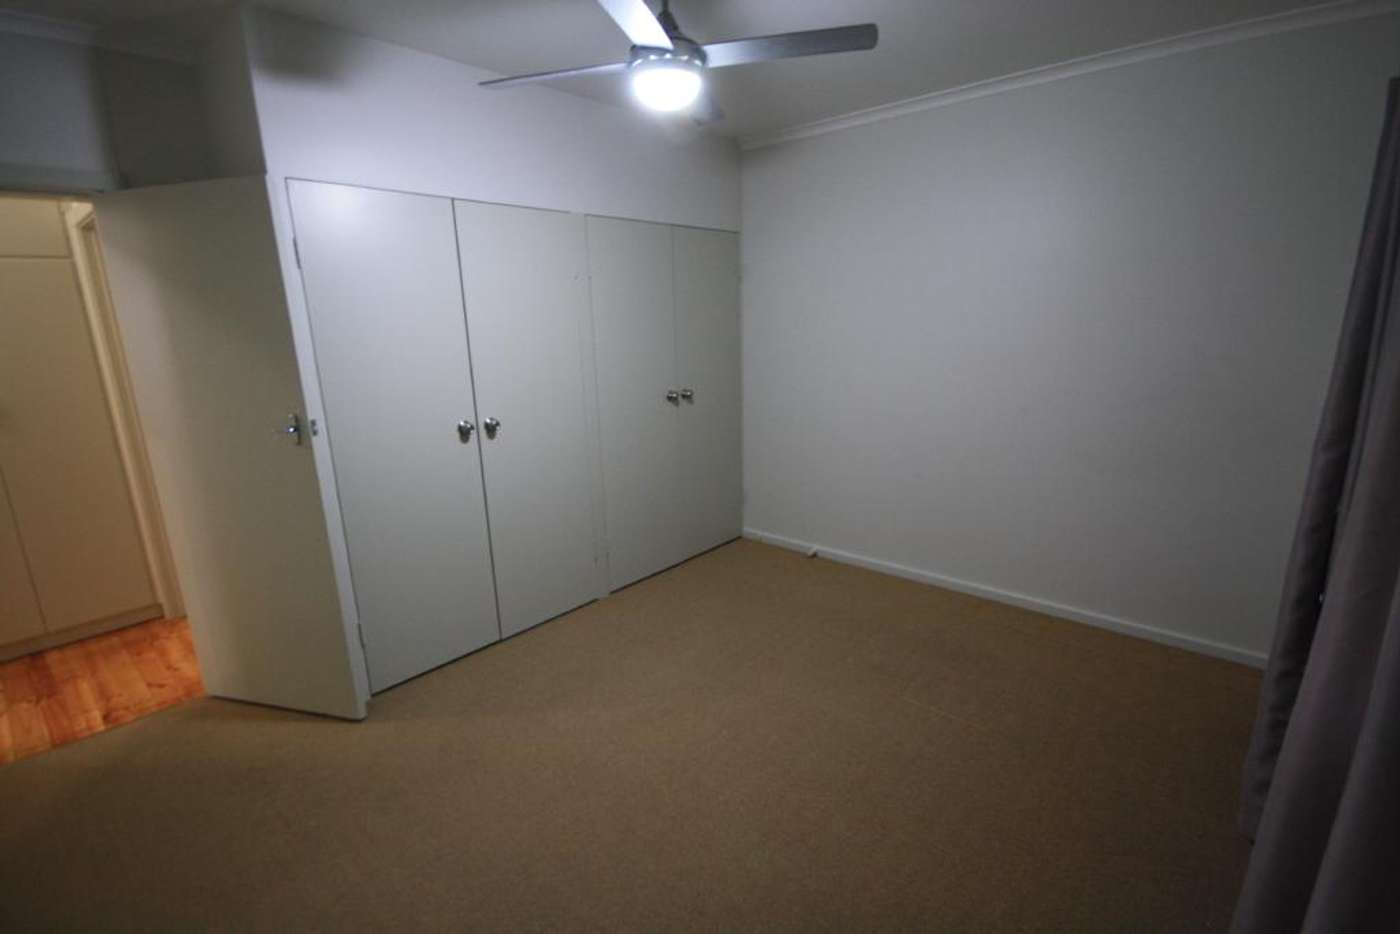 Sixth view of Homely house listing, 61 Paxton Street, Denman NSW 2328